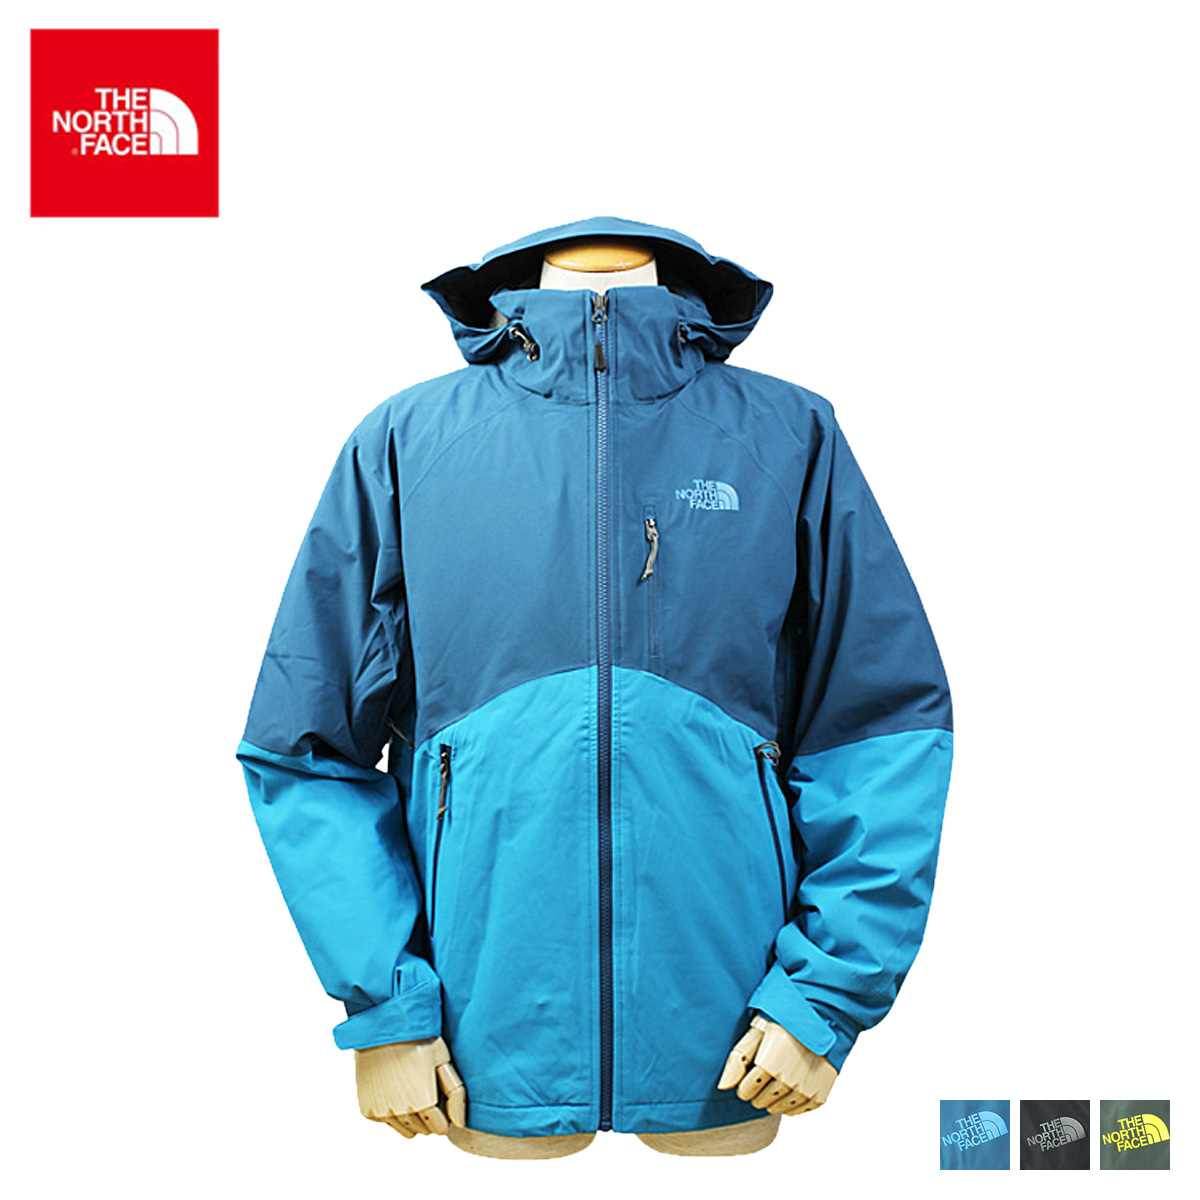 c4b0b2f6a buy mens north face insulated jacket 27dc9 9b6d4